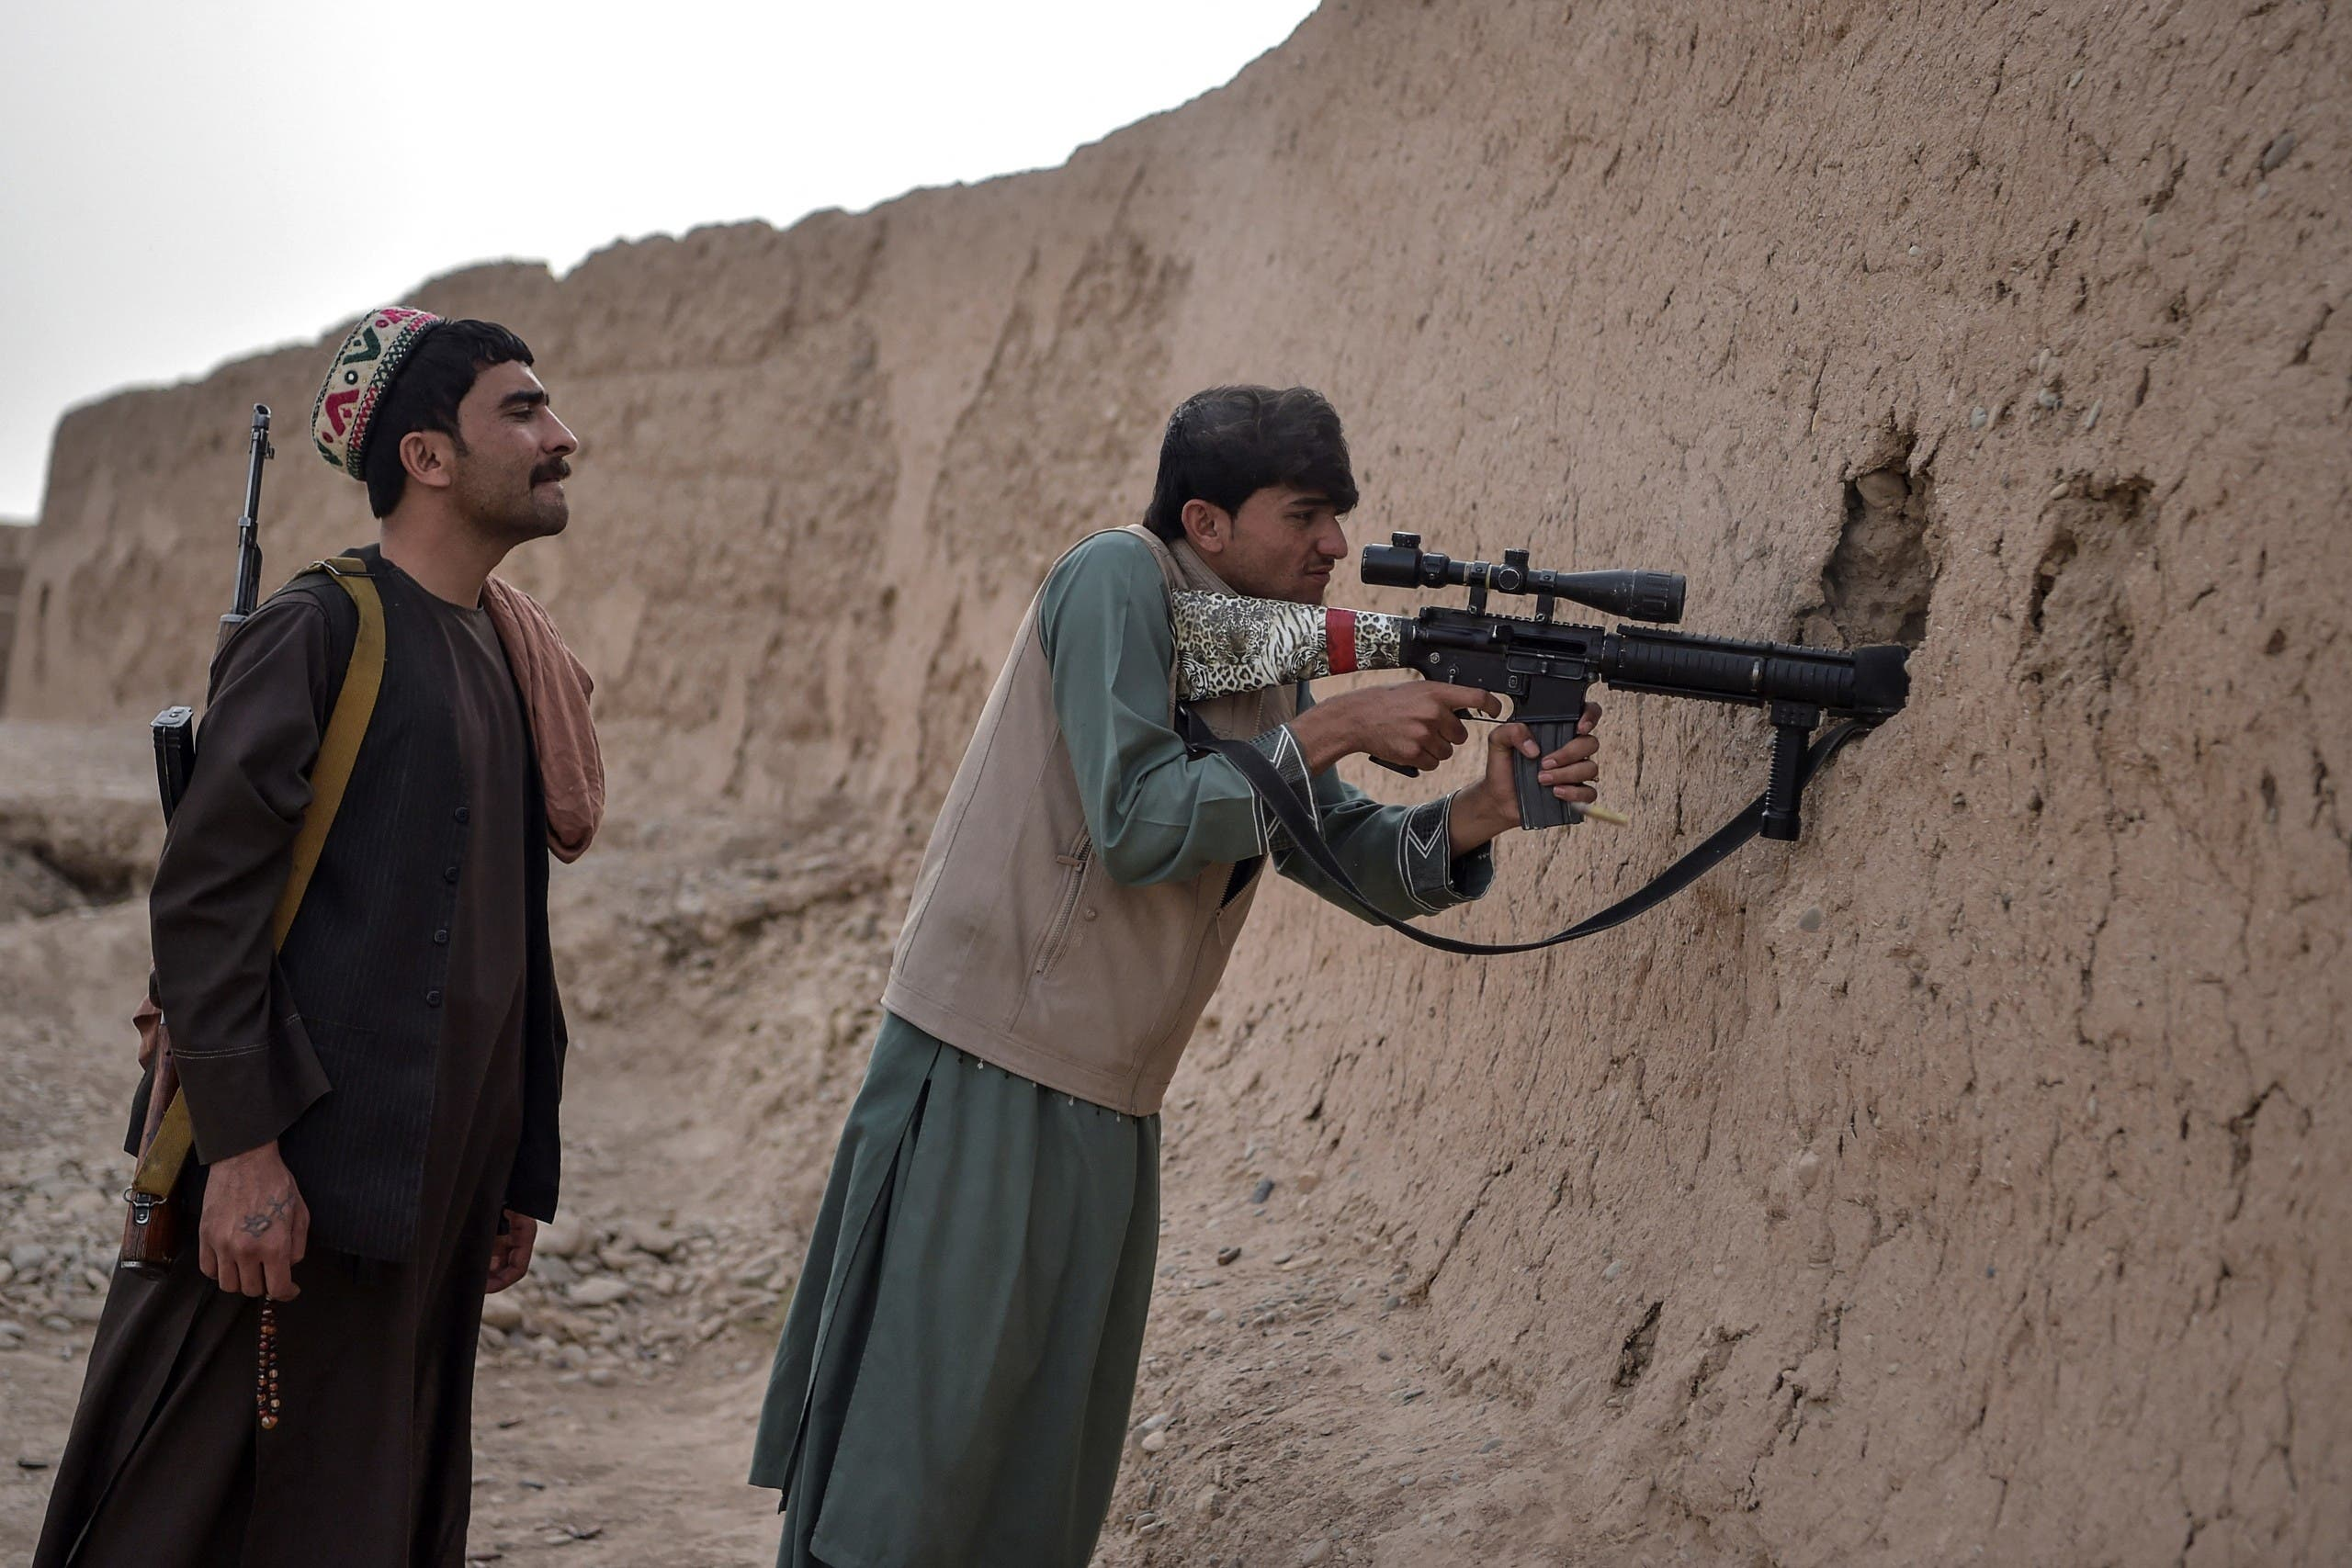 In the face of bloody battles … Taliban: Committed to peace